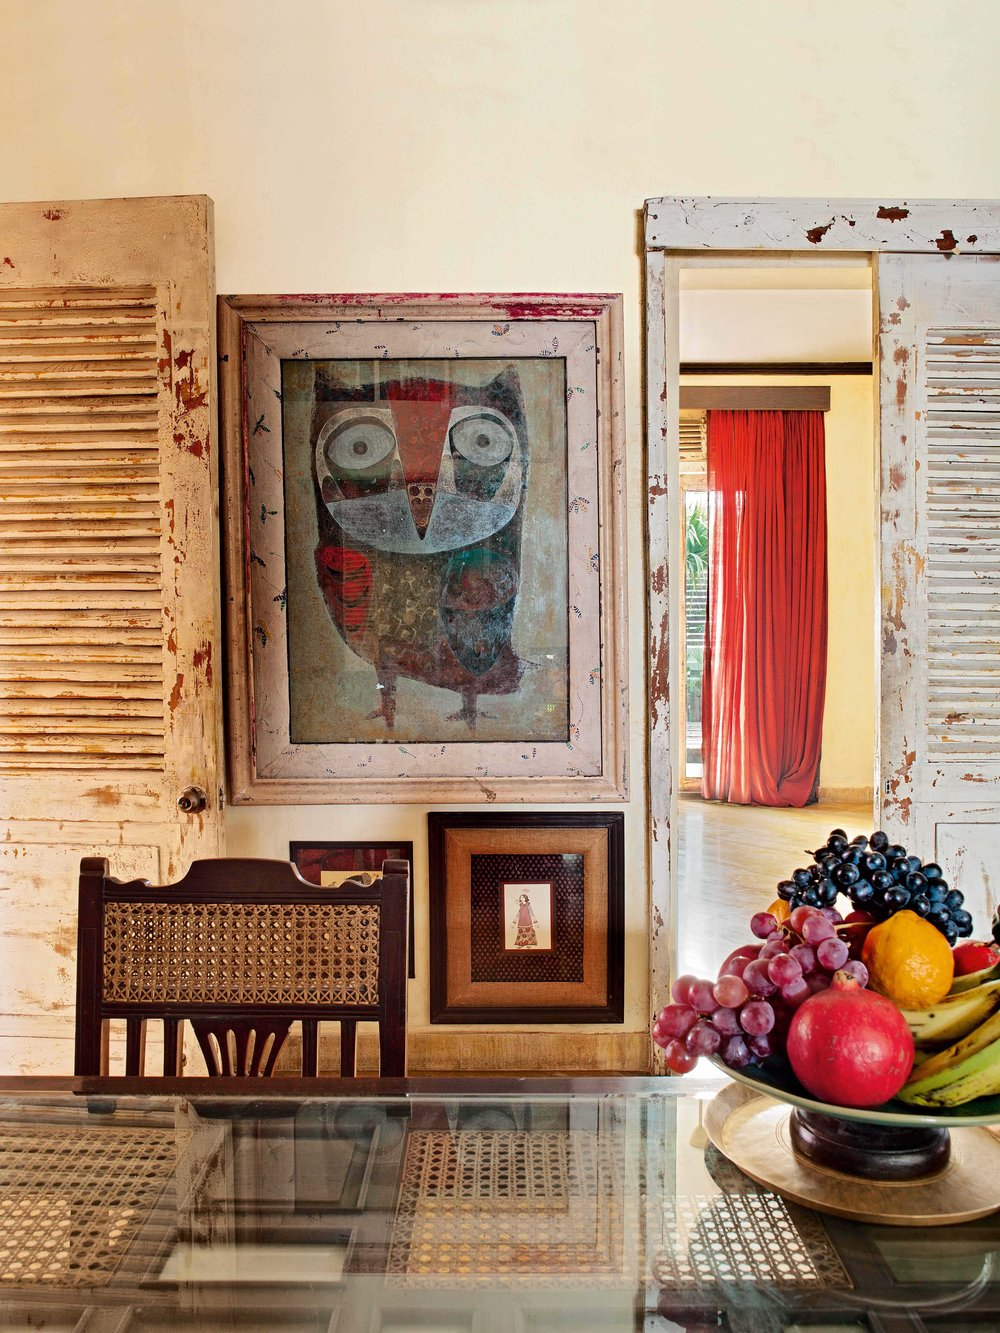 The small dining room features art from the Sabyasachi Art Foundation and works by Dhruvi Acharya. The dining table is made from wood, rattan and glass from Kochi.